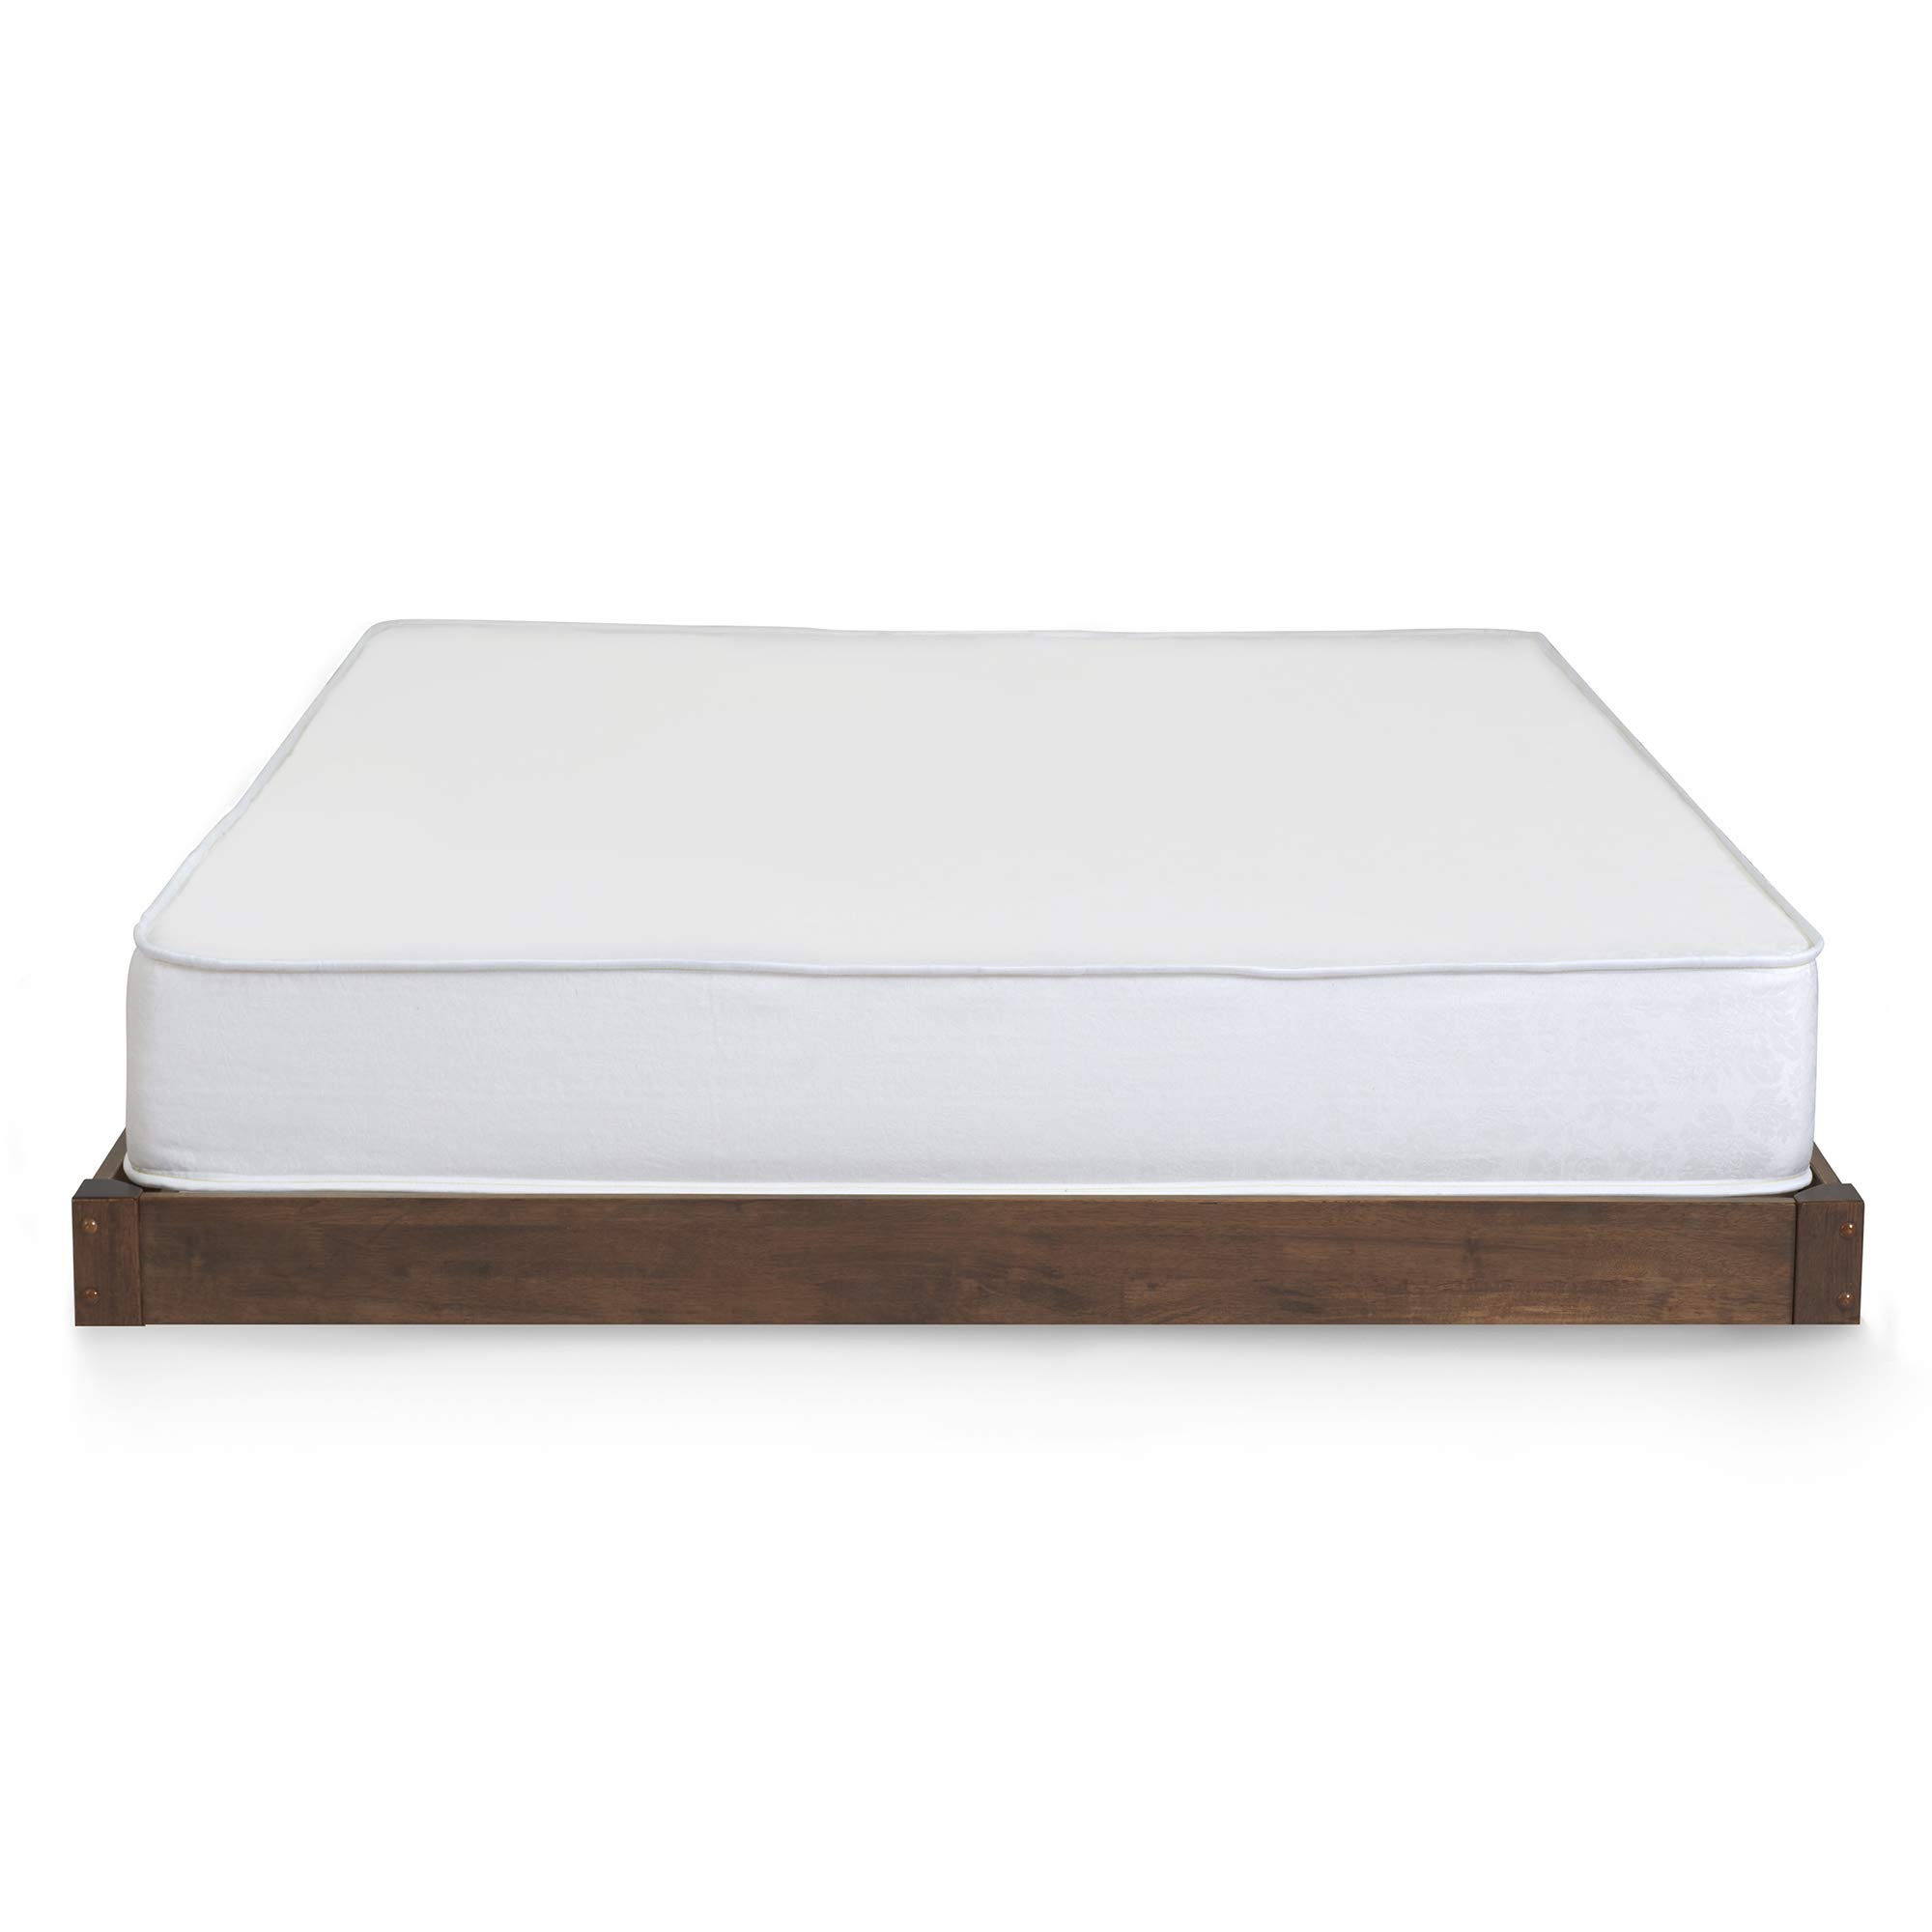 Serenia Sleep 8-Inch Memory Foam RV Mattress, Short Full by Serenia Sleep (Image #1)